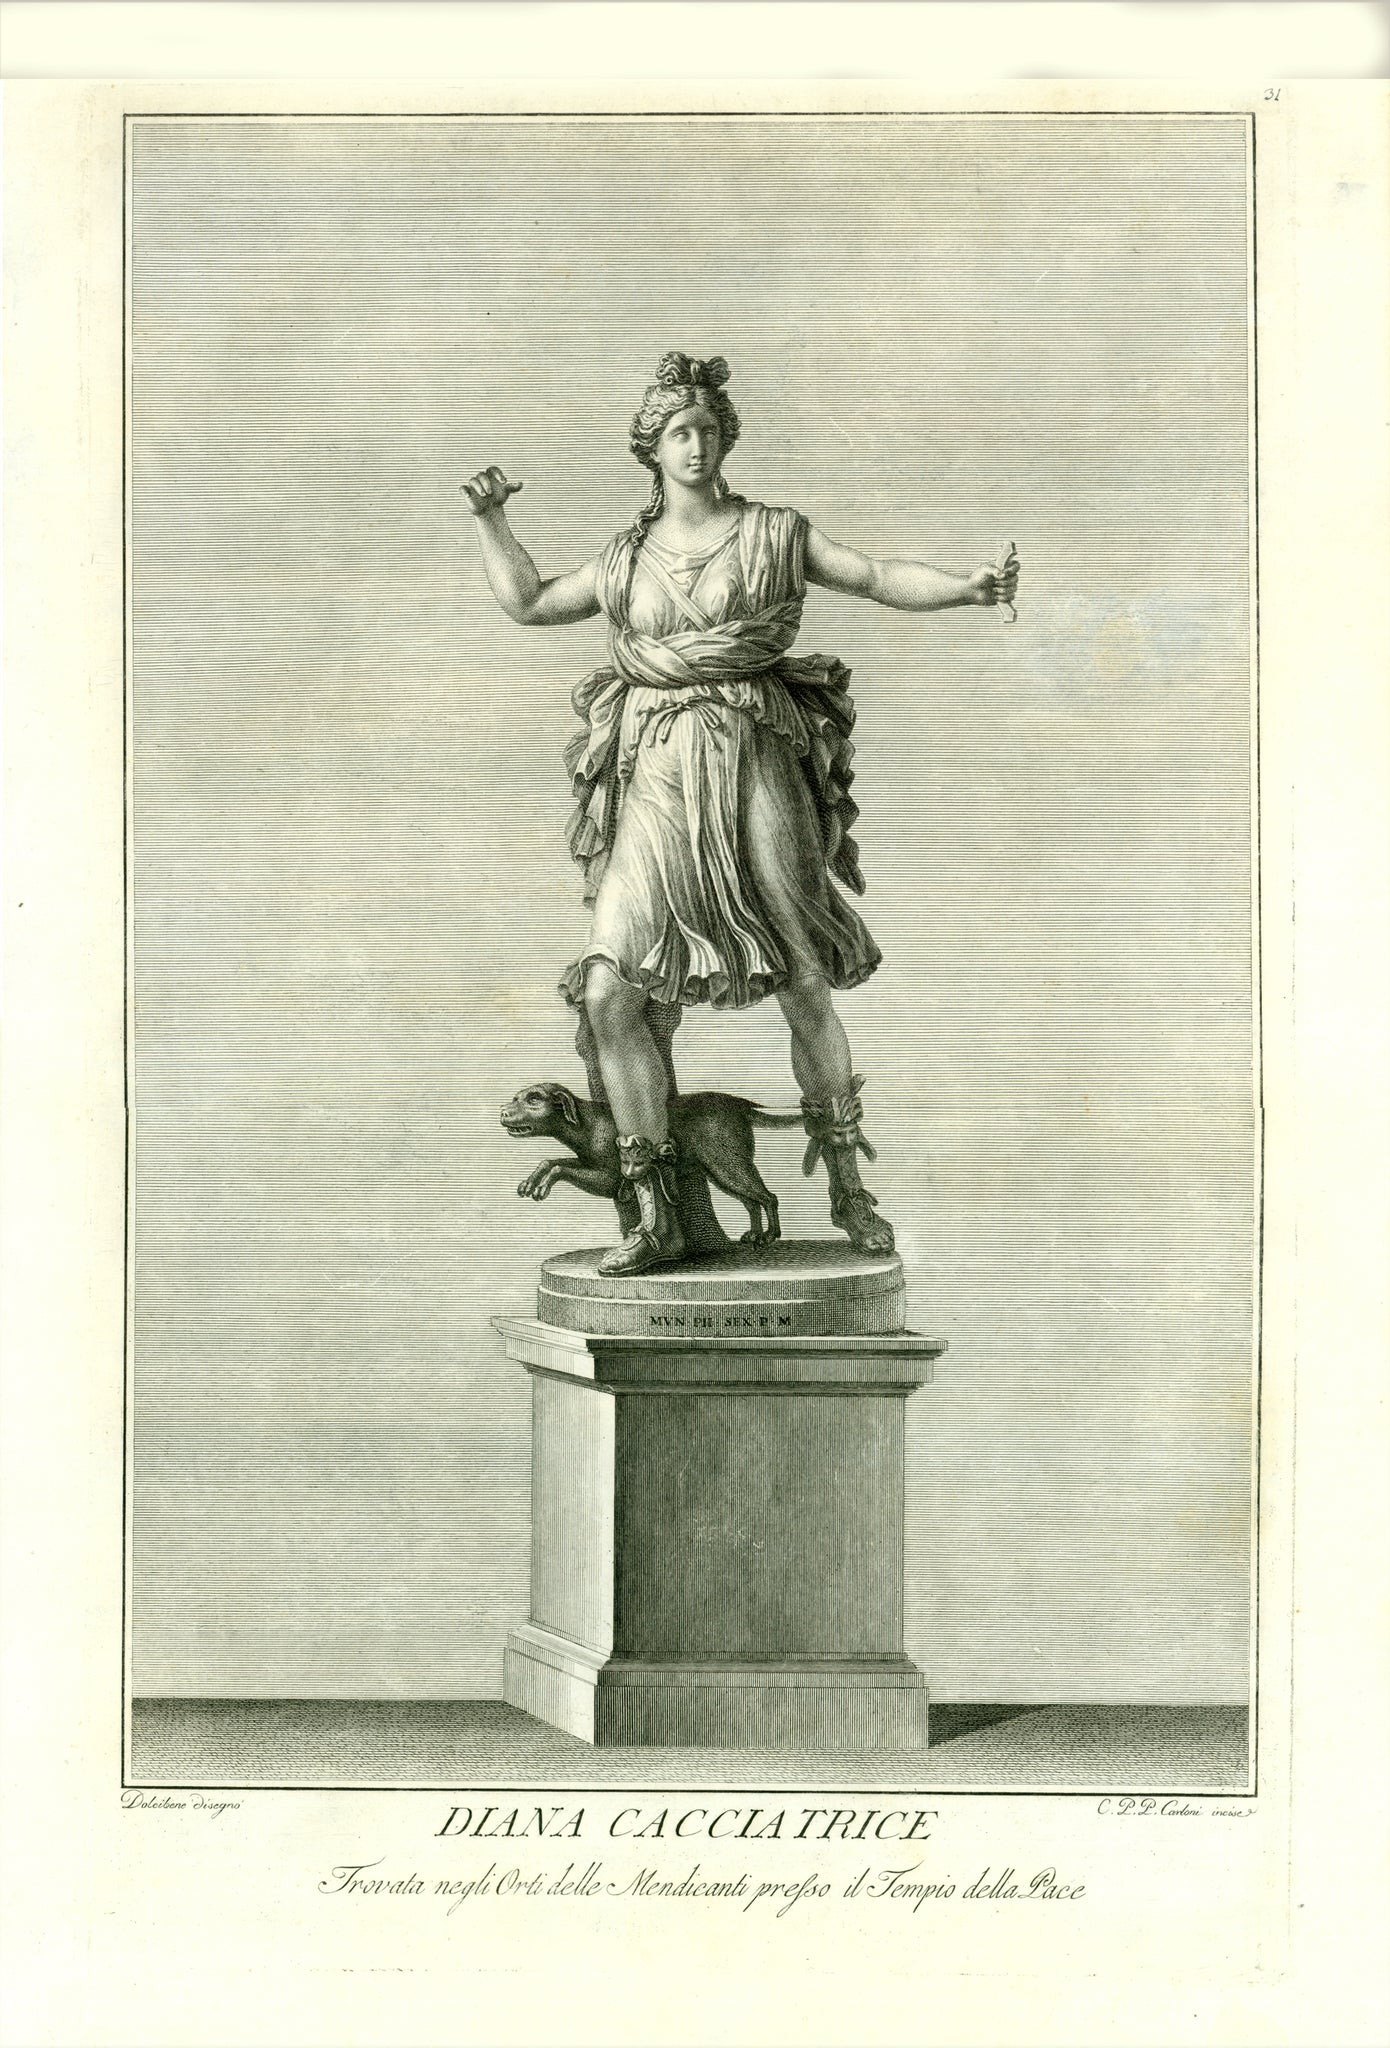 """Diana Cacciatrice""  Copper etching by Carlo Carloni  After the drawing by Vincenzo Dolcibene  Piublished in: ""Il Museo Pio Clementino""  Rome, 1782  Diana - Roman Goddess of Hunting (Greek mythology: Artemis), patroness also of countryside and of the Moon.  This statue shows clearly, that Diana had a bow and an arrow on the taut tendant. An adequate and delightful possession for any passionate hunter with a classical mind."